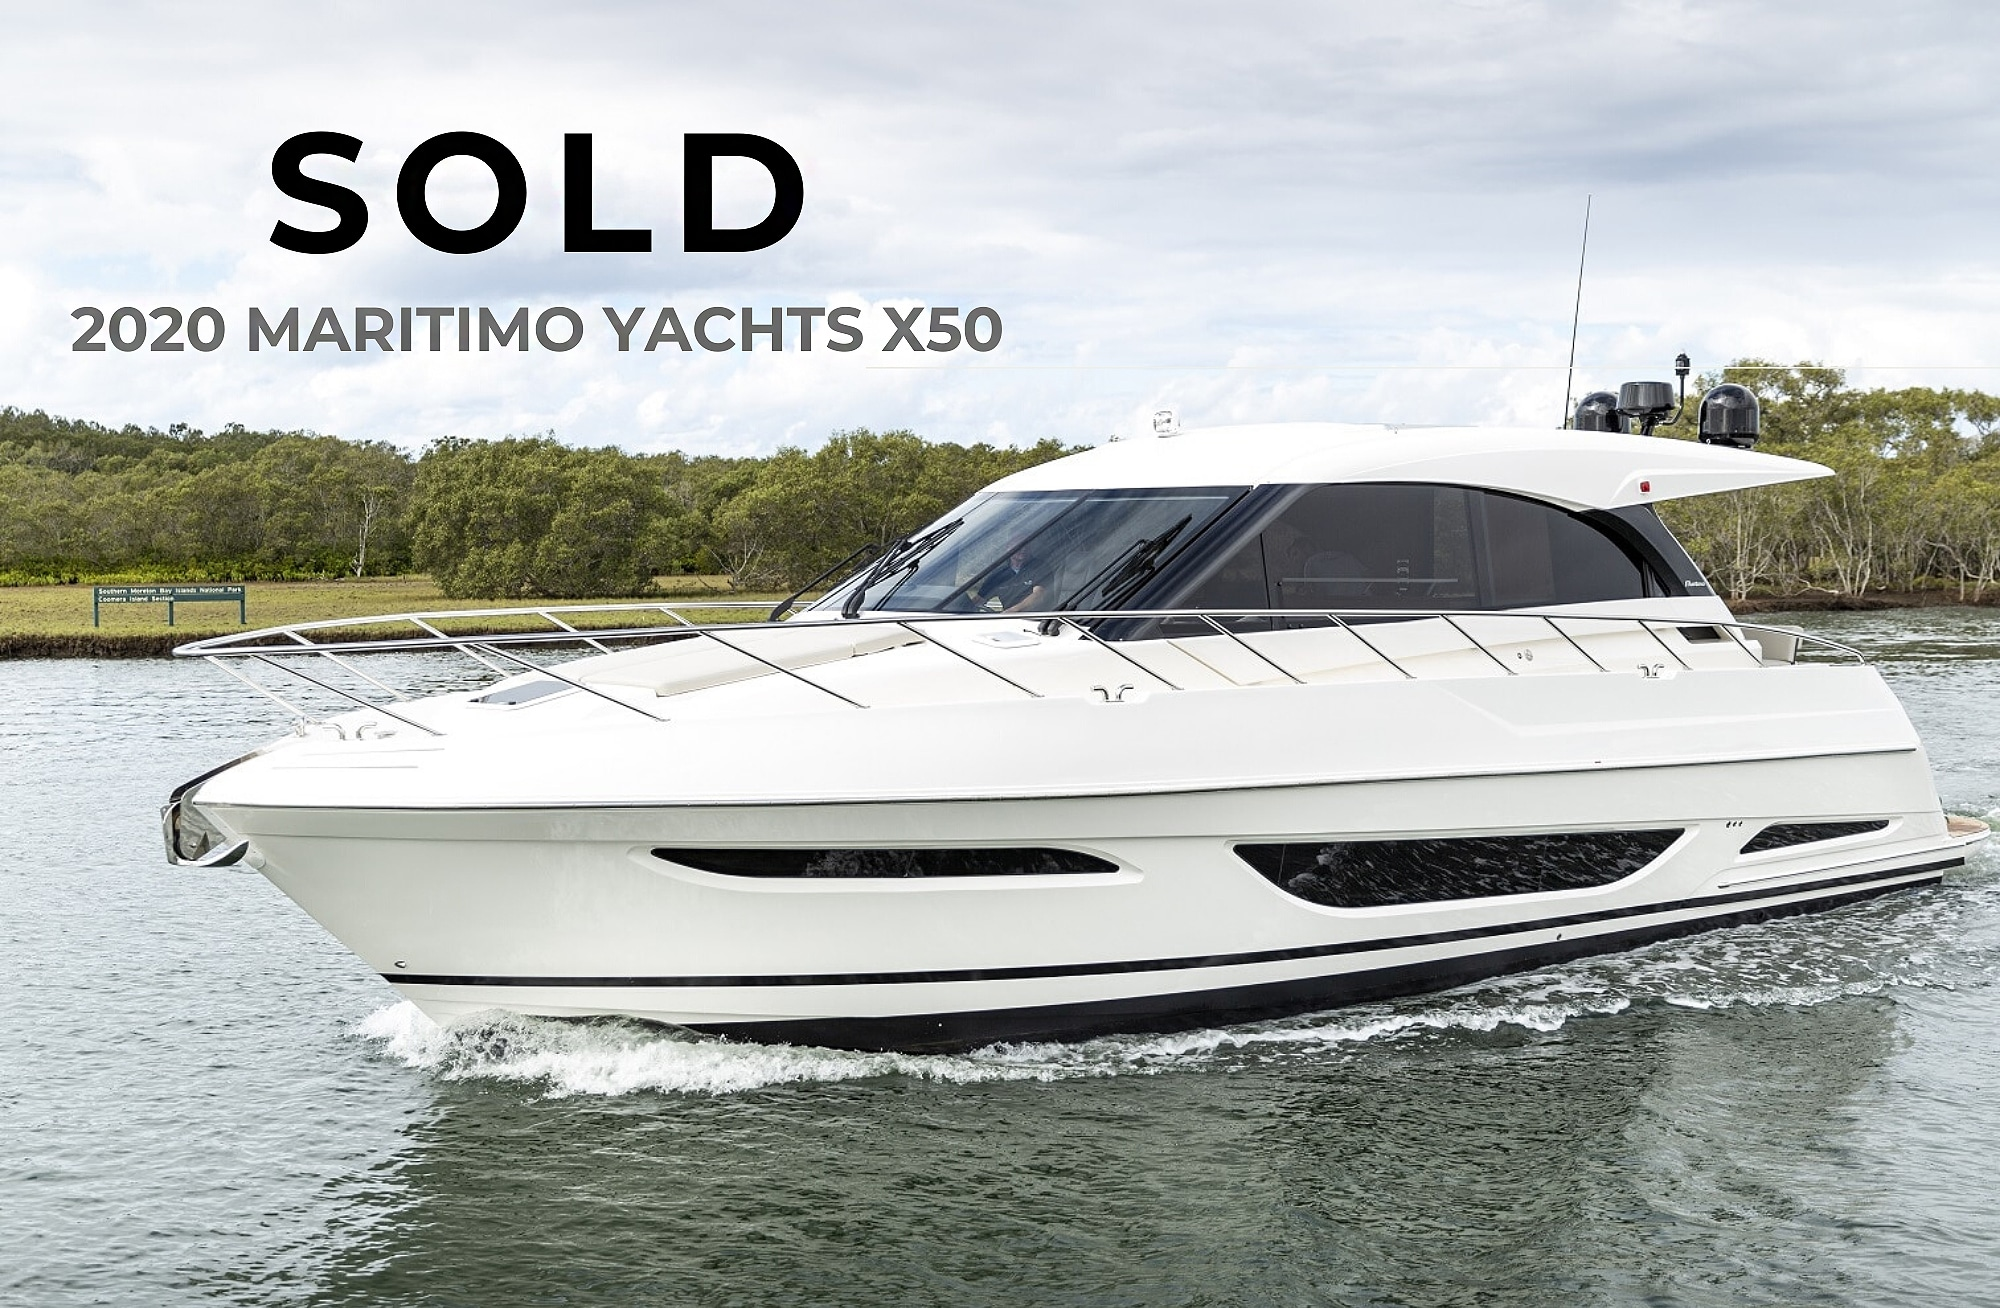 2020 X50 Maritimo Yacht | Sold Report